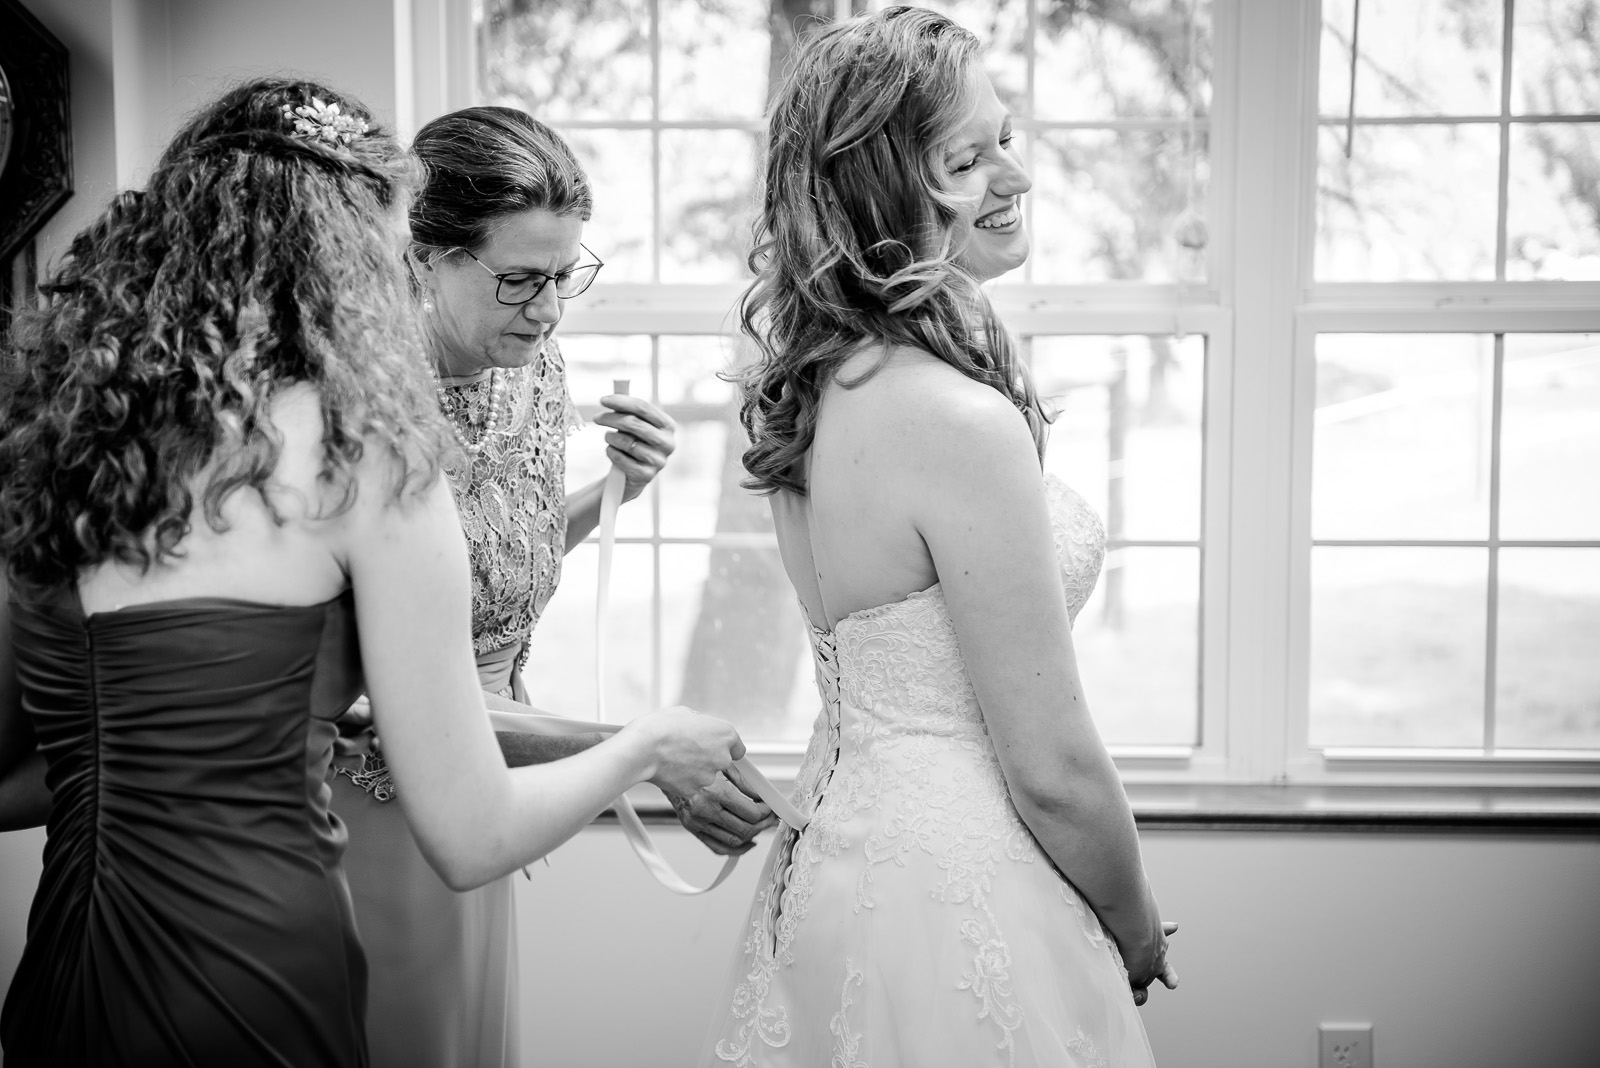 Eric_and_Christy_Photography_Blog_2018_Wed_moments-16